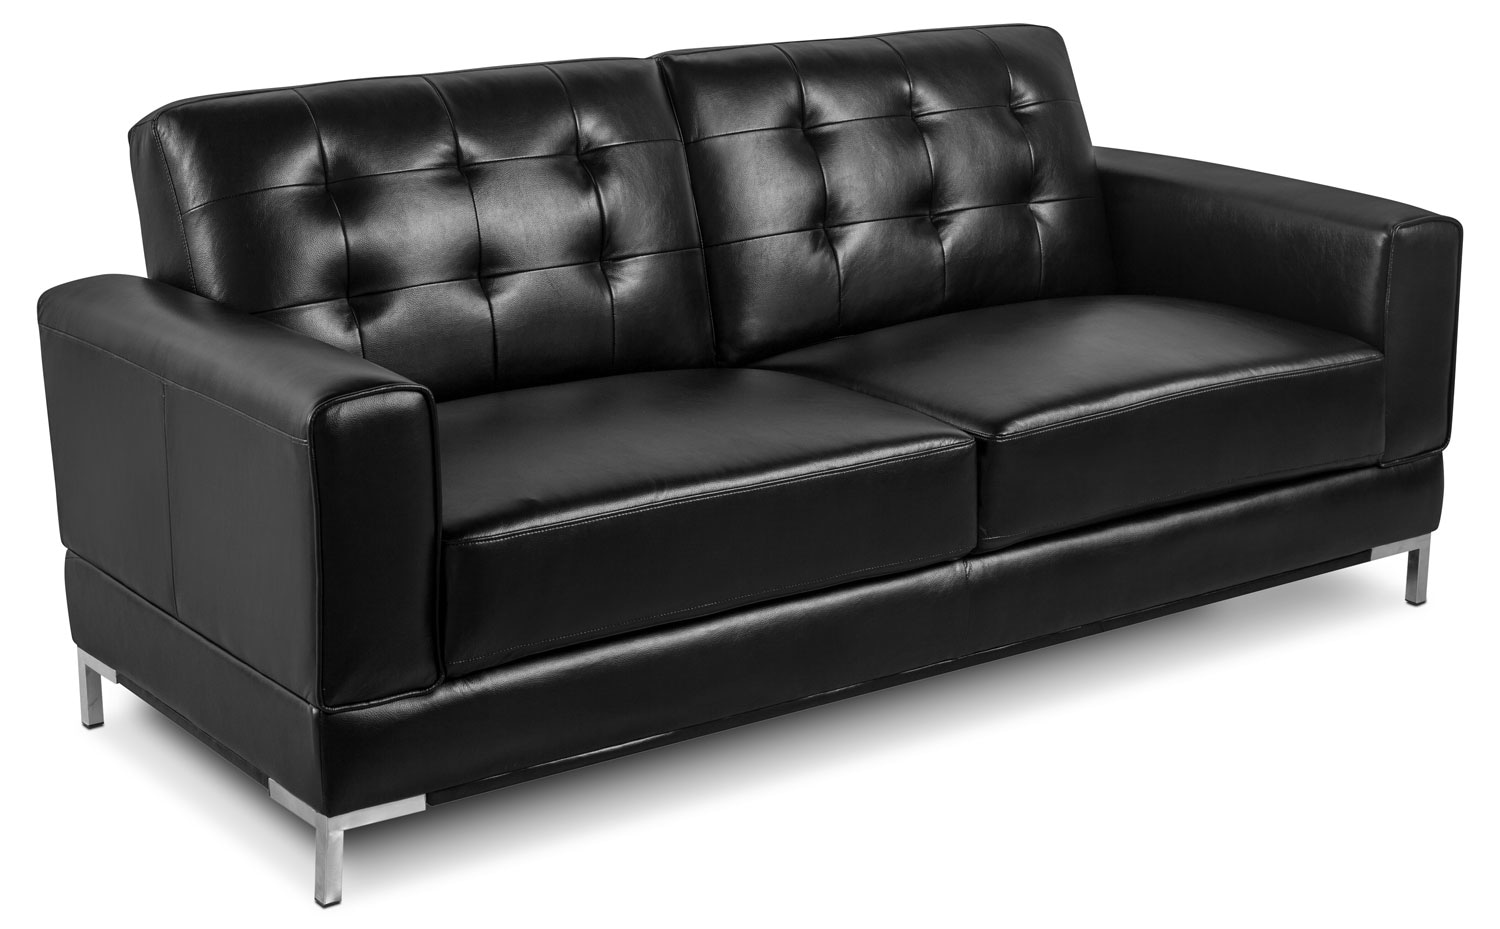 Myer Leather-Look Fabric Sofa - Black